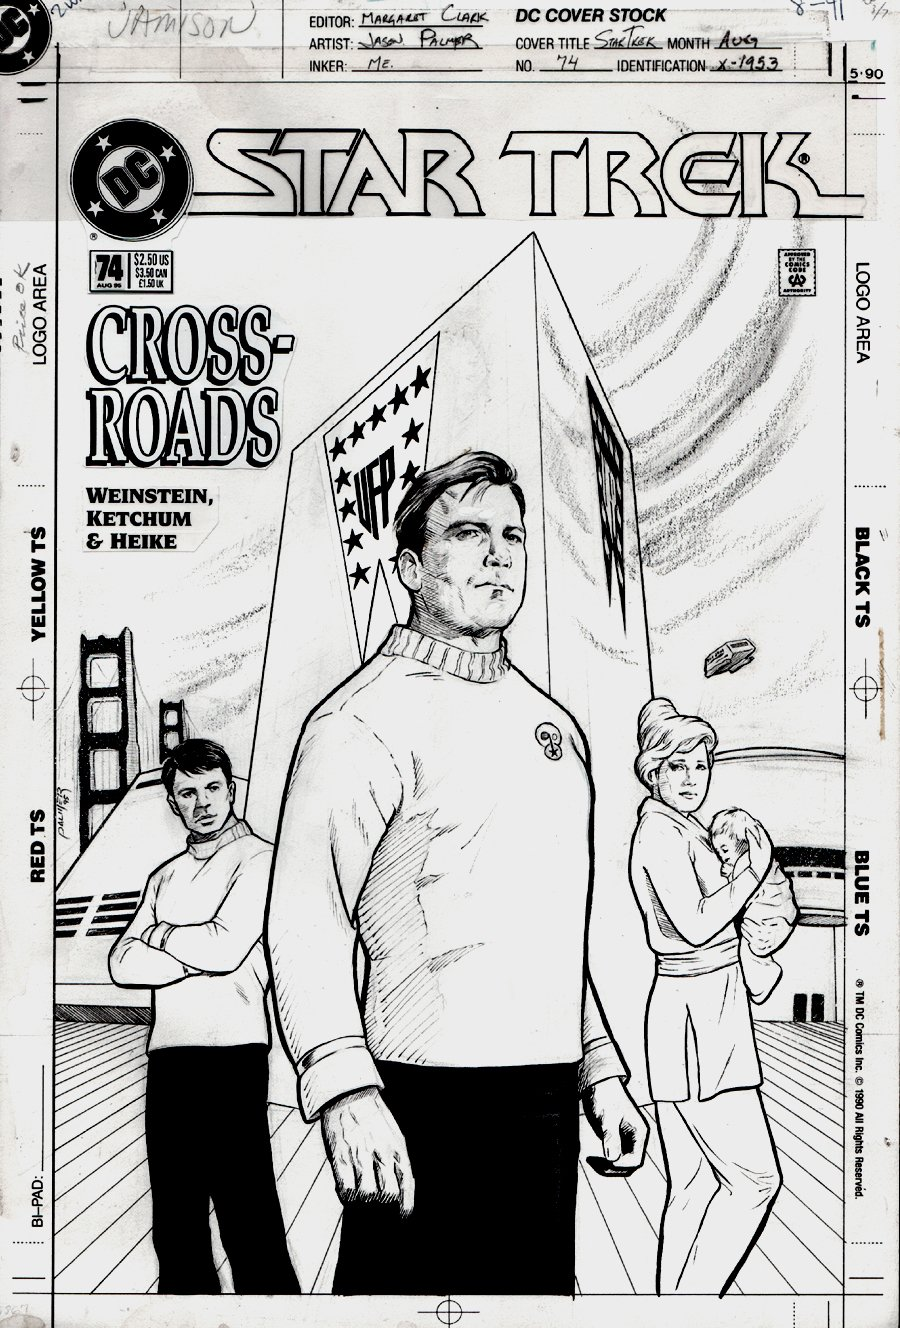 Star Trek #74 Cover (1995)